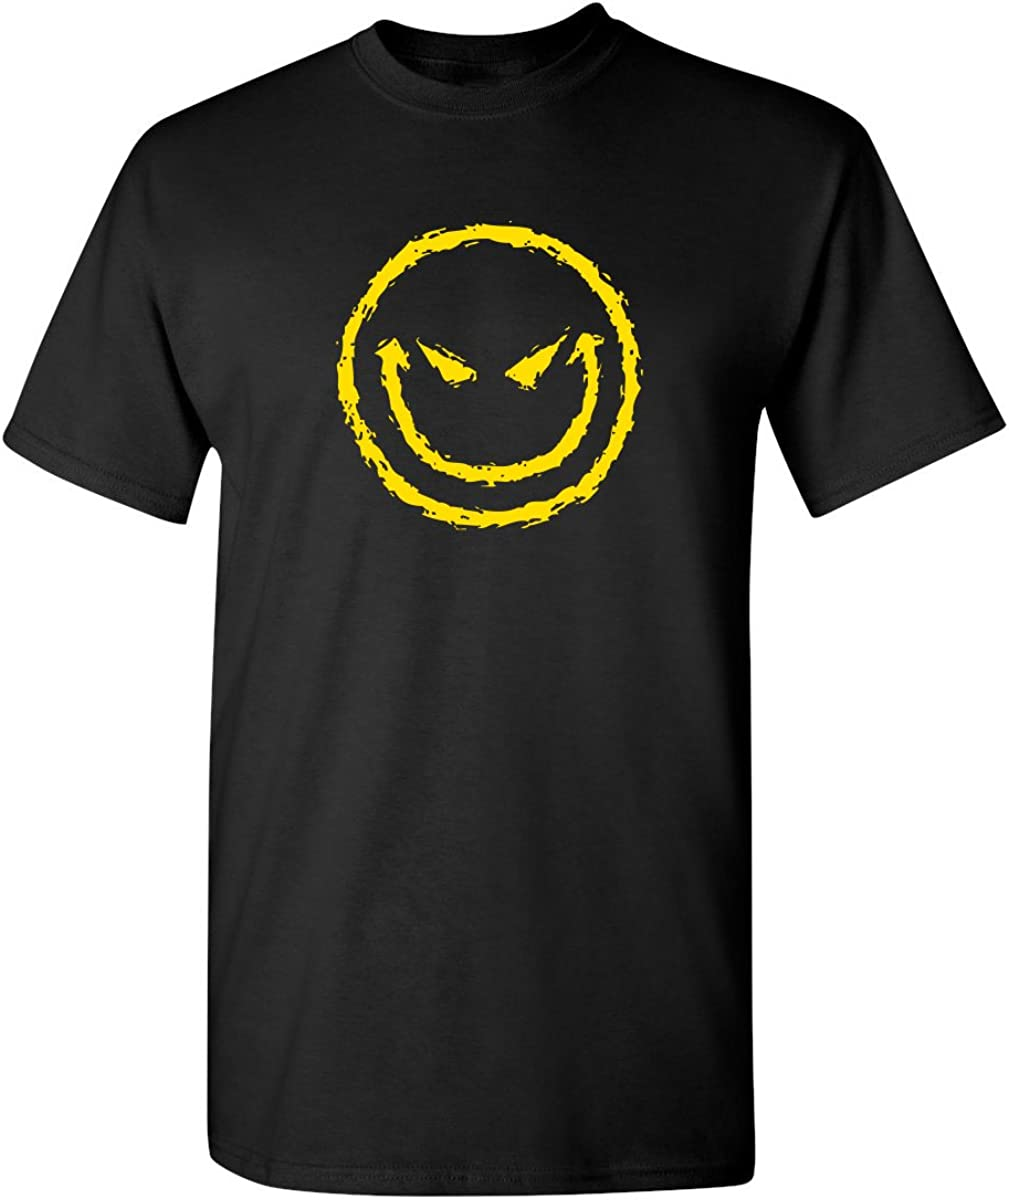 Evil Smile Face Graphic Novelty Sarcastic Funny T Shirt